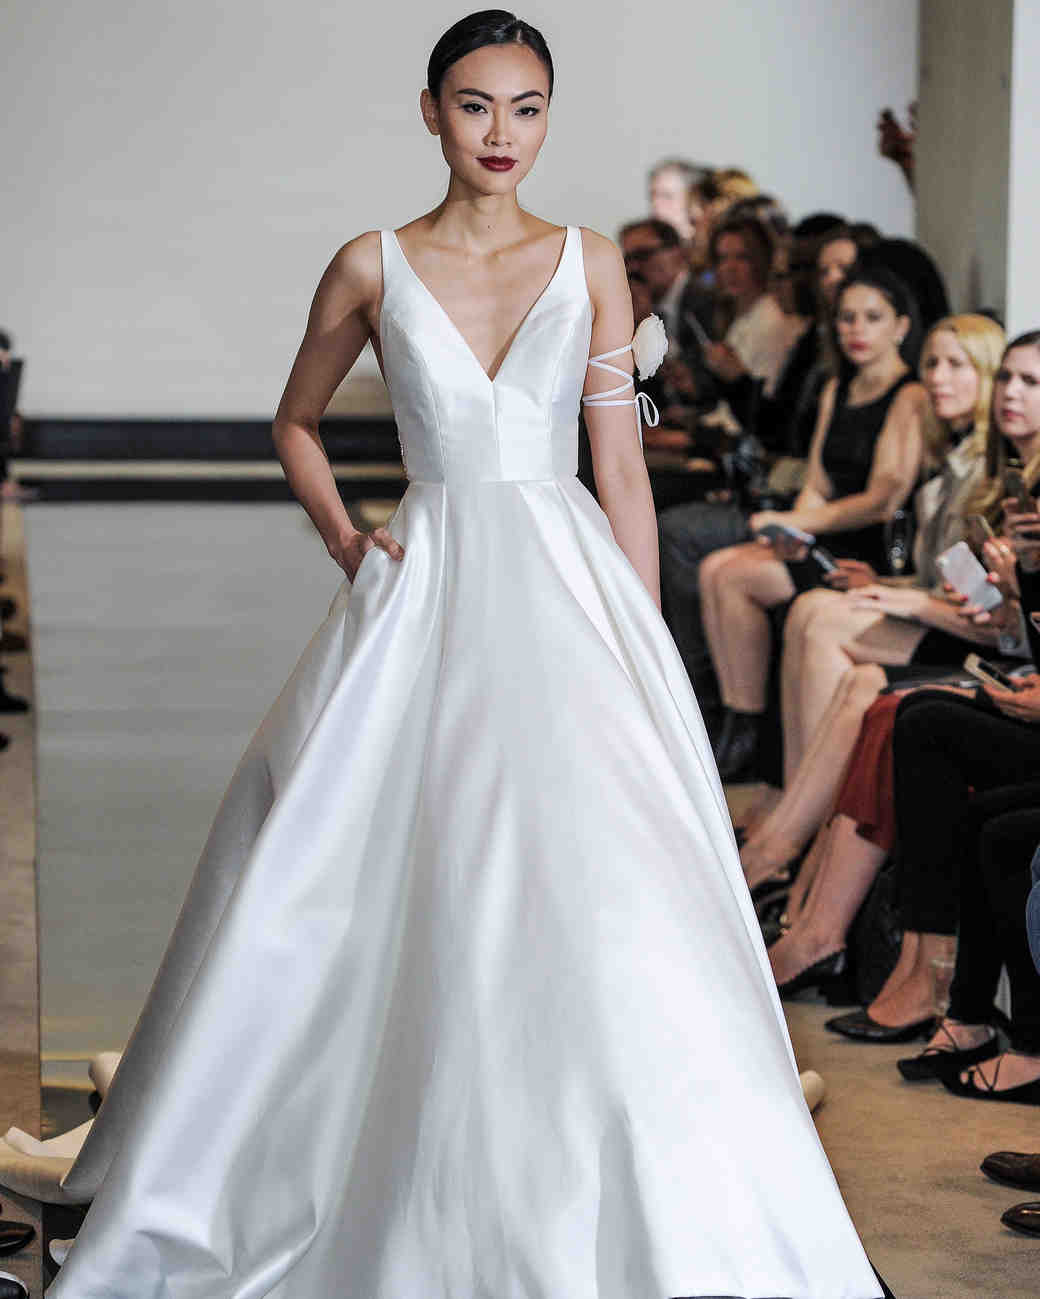 Wedding Gowns: Simple Wedding Dresses That Are Just Plain Chic